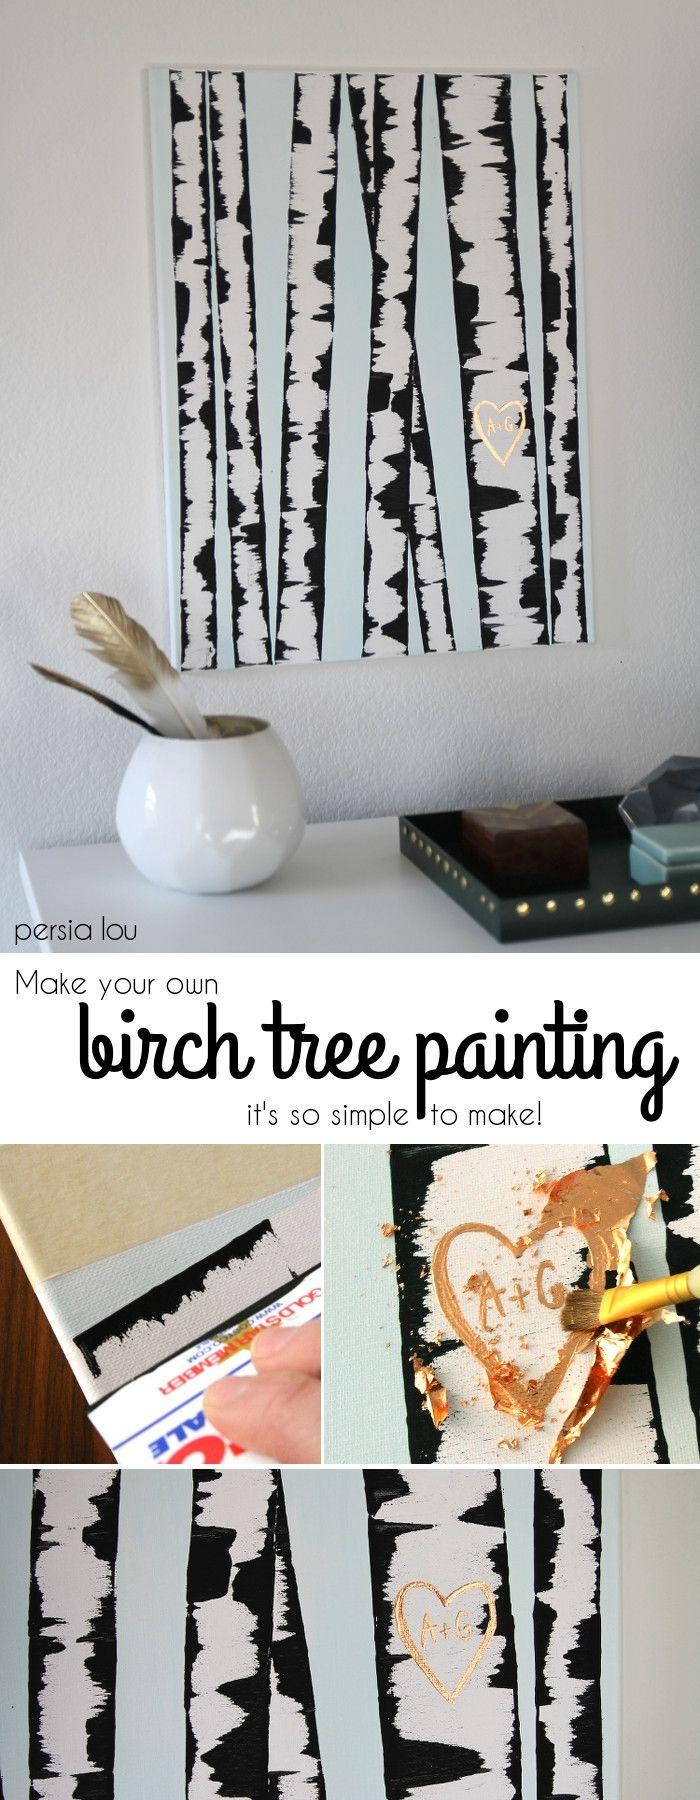 Get 20+ Homemade Wall Art Ideas On Pinterest Without Signing Up Intended For Homemade Wall Art (View 3 of 20)